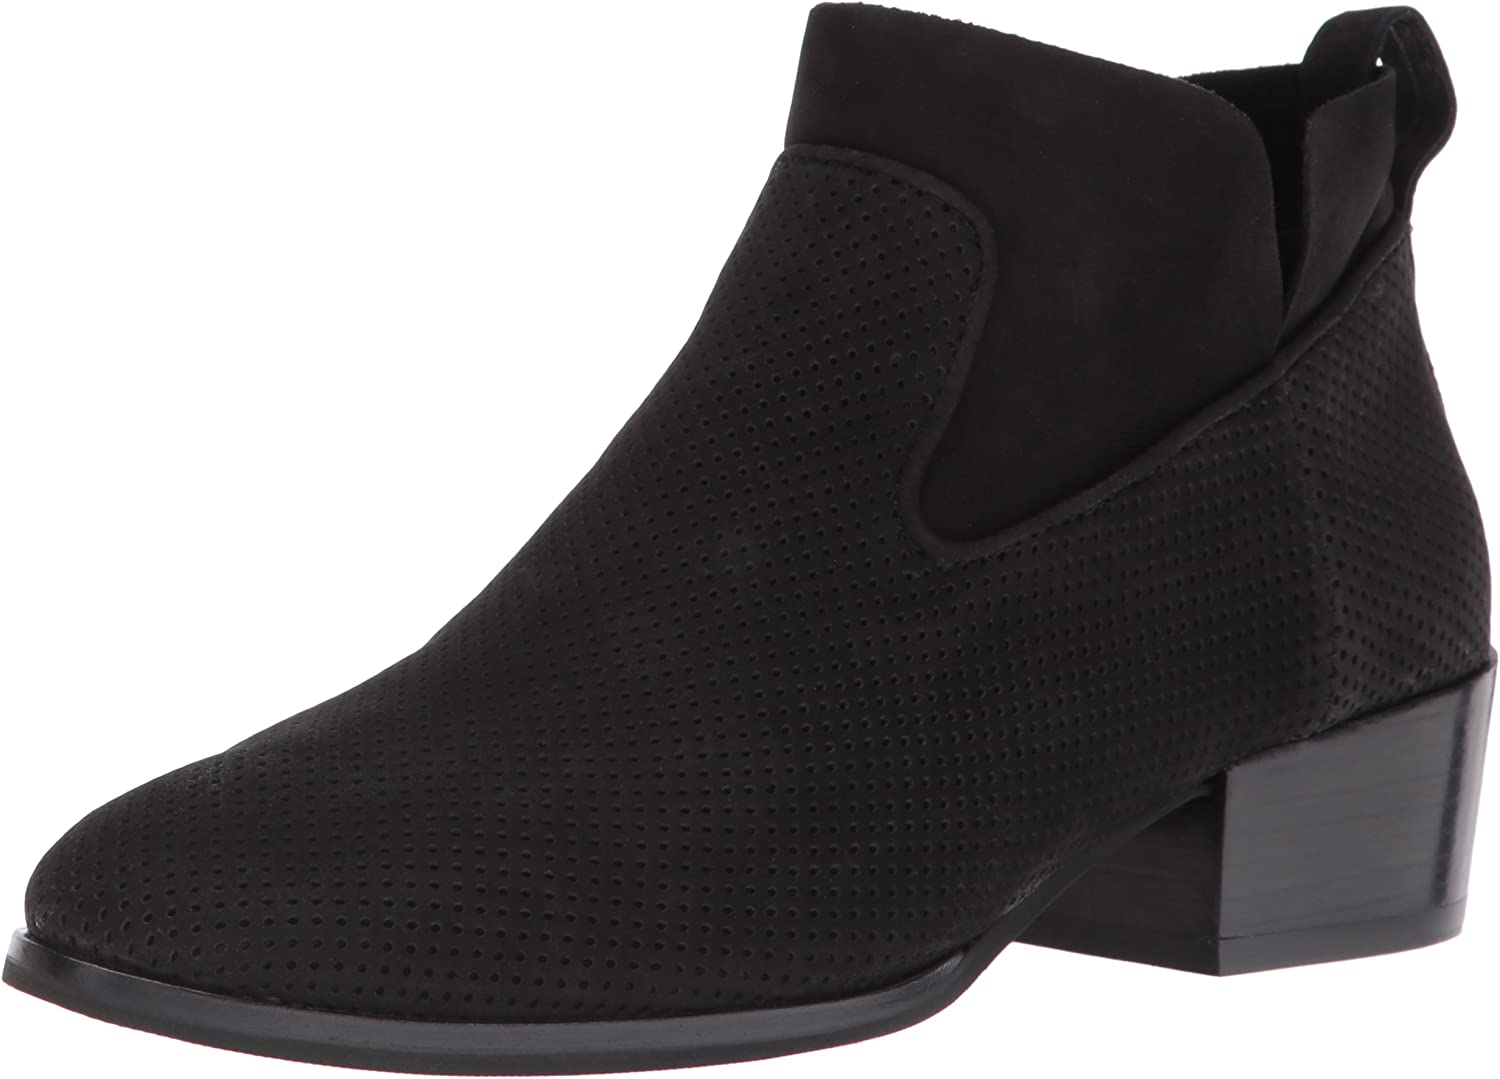 Via Spiga Womens Tricia Ankle Bootie Ankle Boot